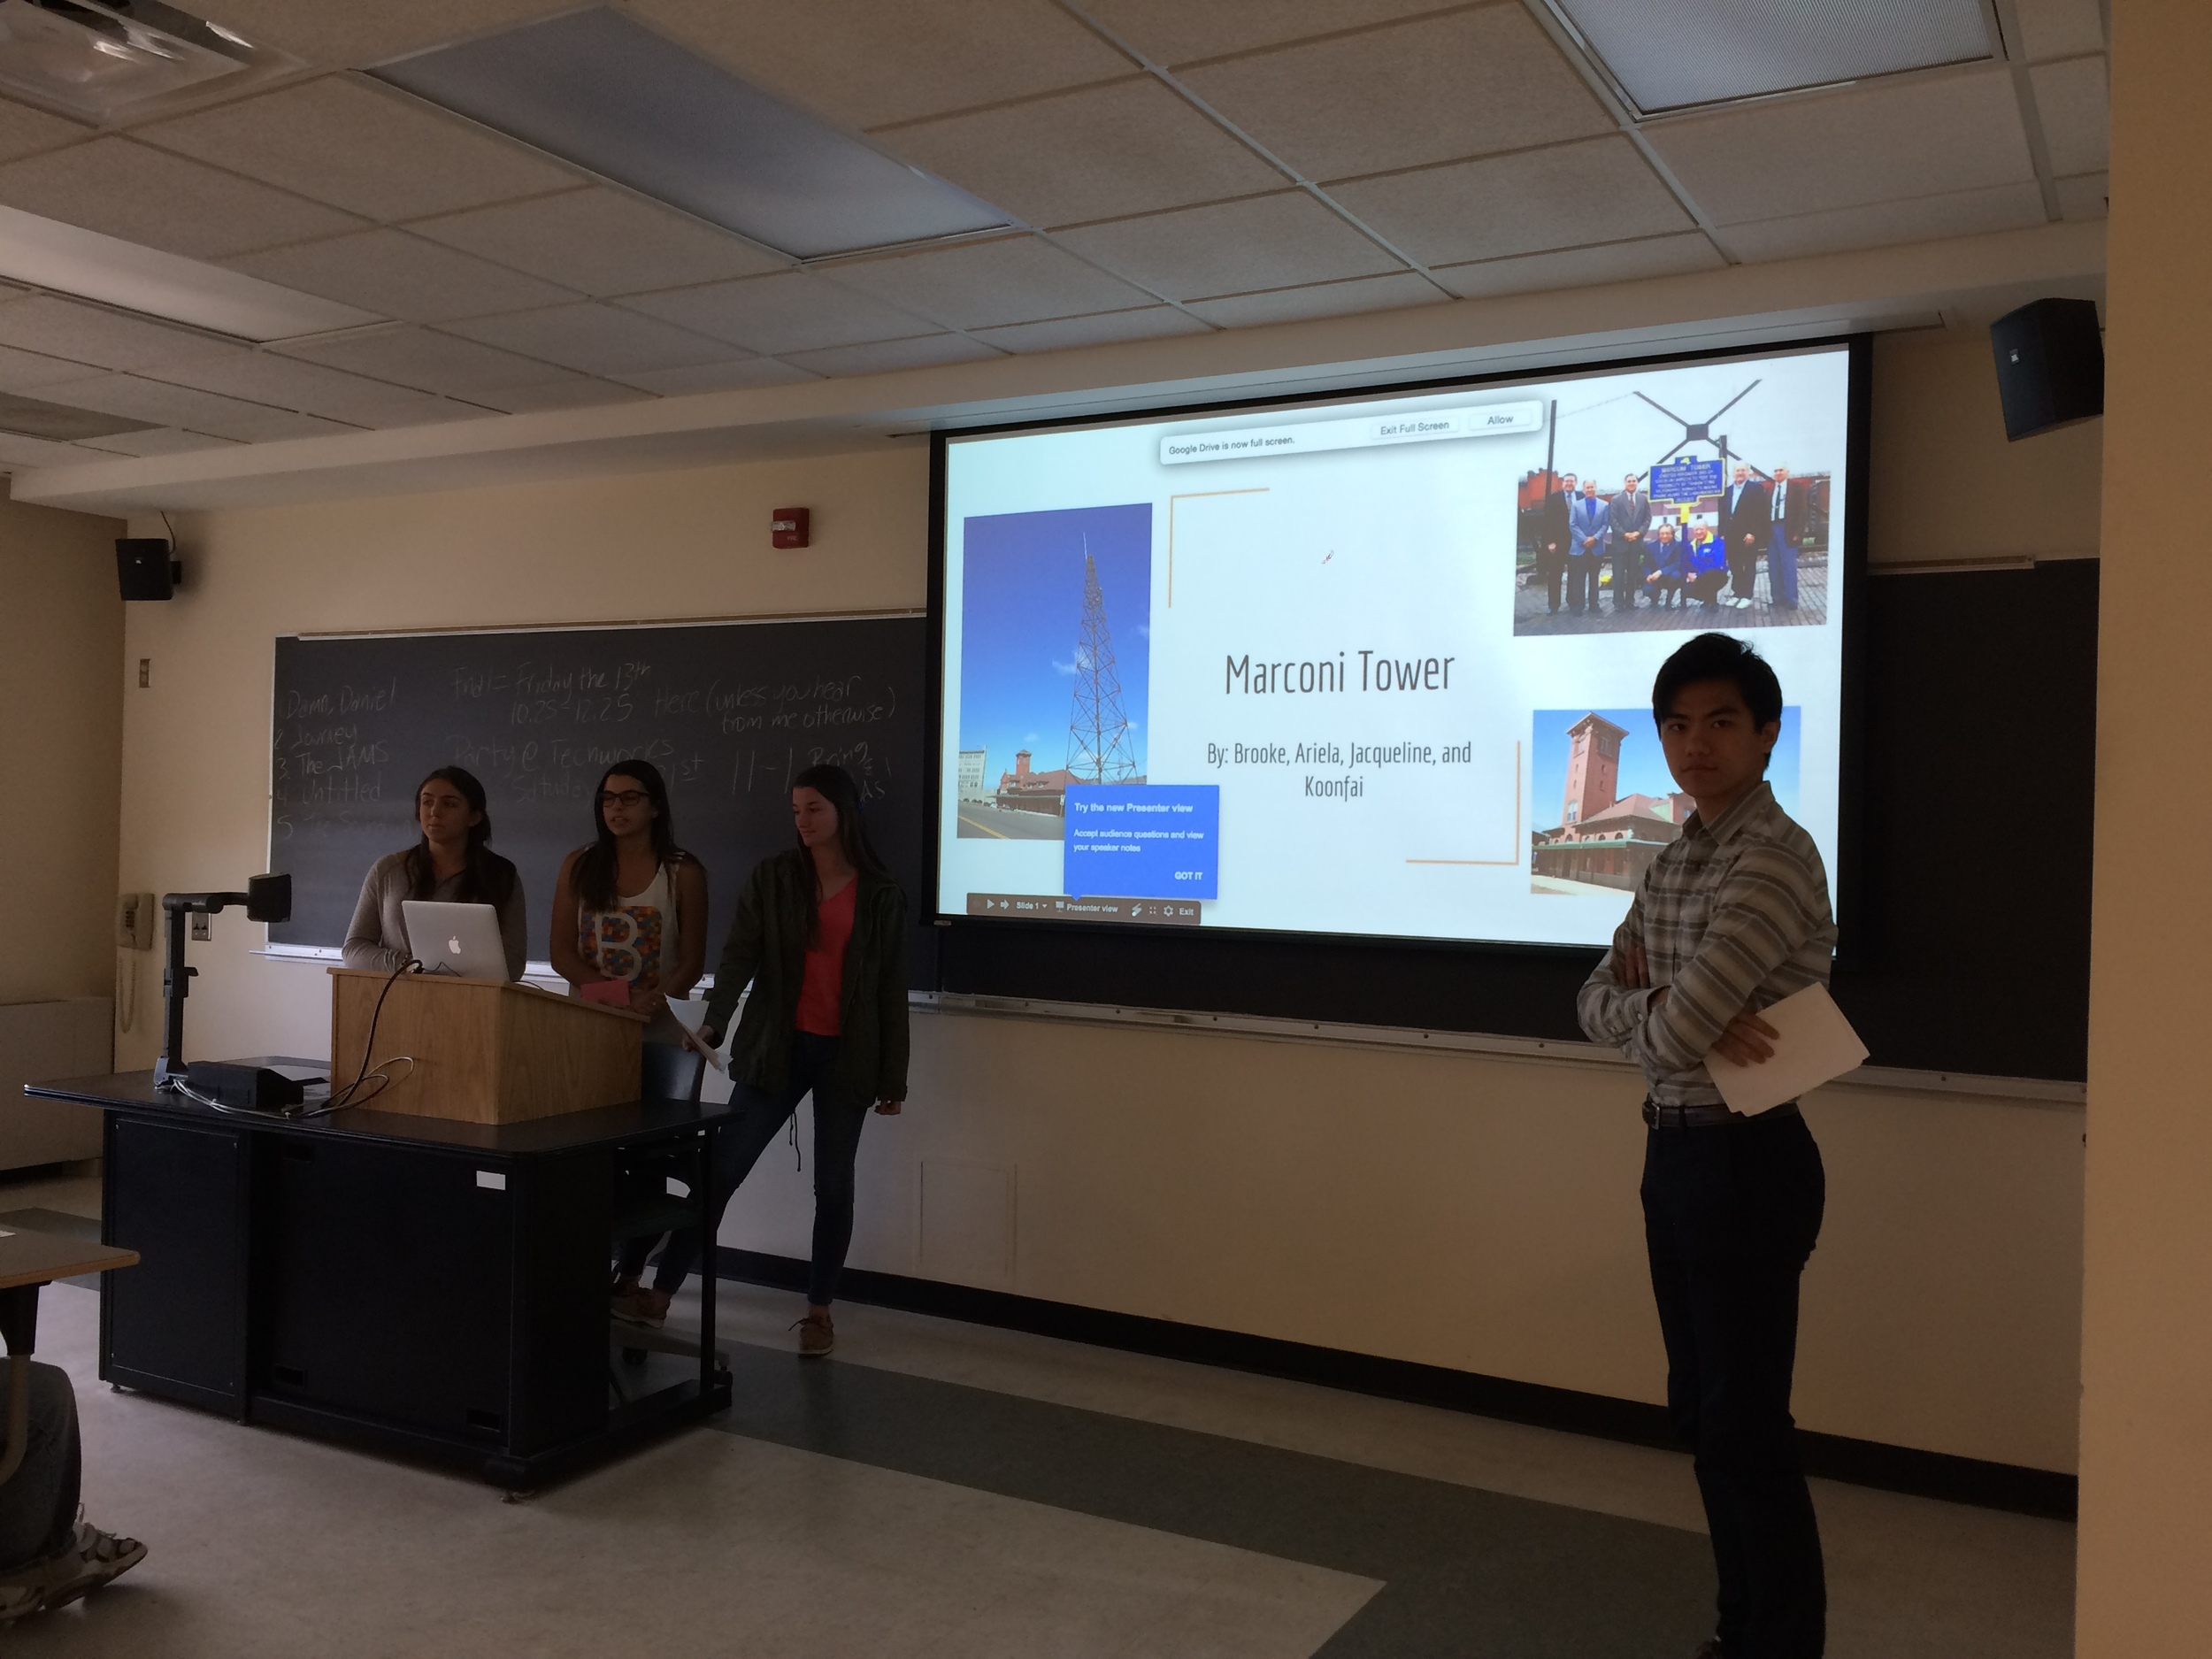 The Marconi Tower Group Sharing Their Research (l-r): Jacqueline Kennedy, Ariela Handler, Brooke Poznak, and Koonfai Xie